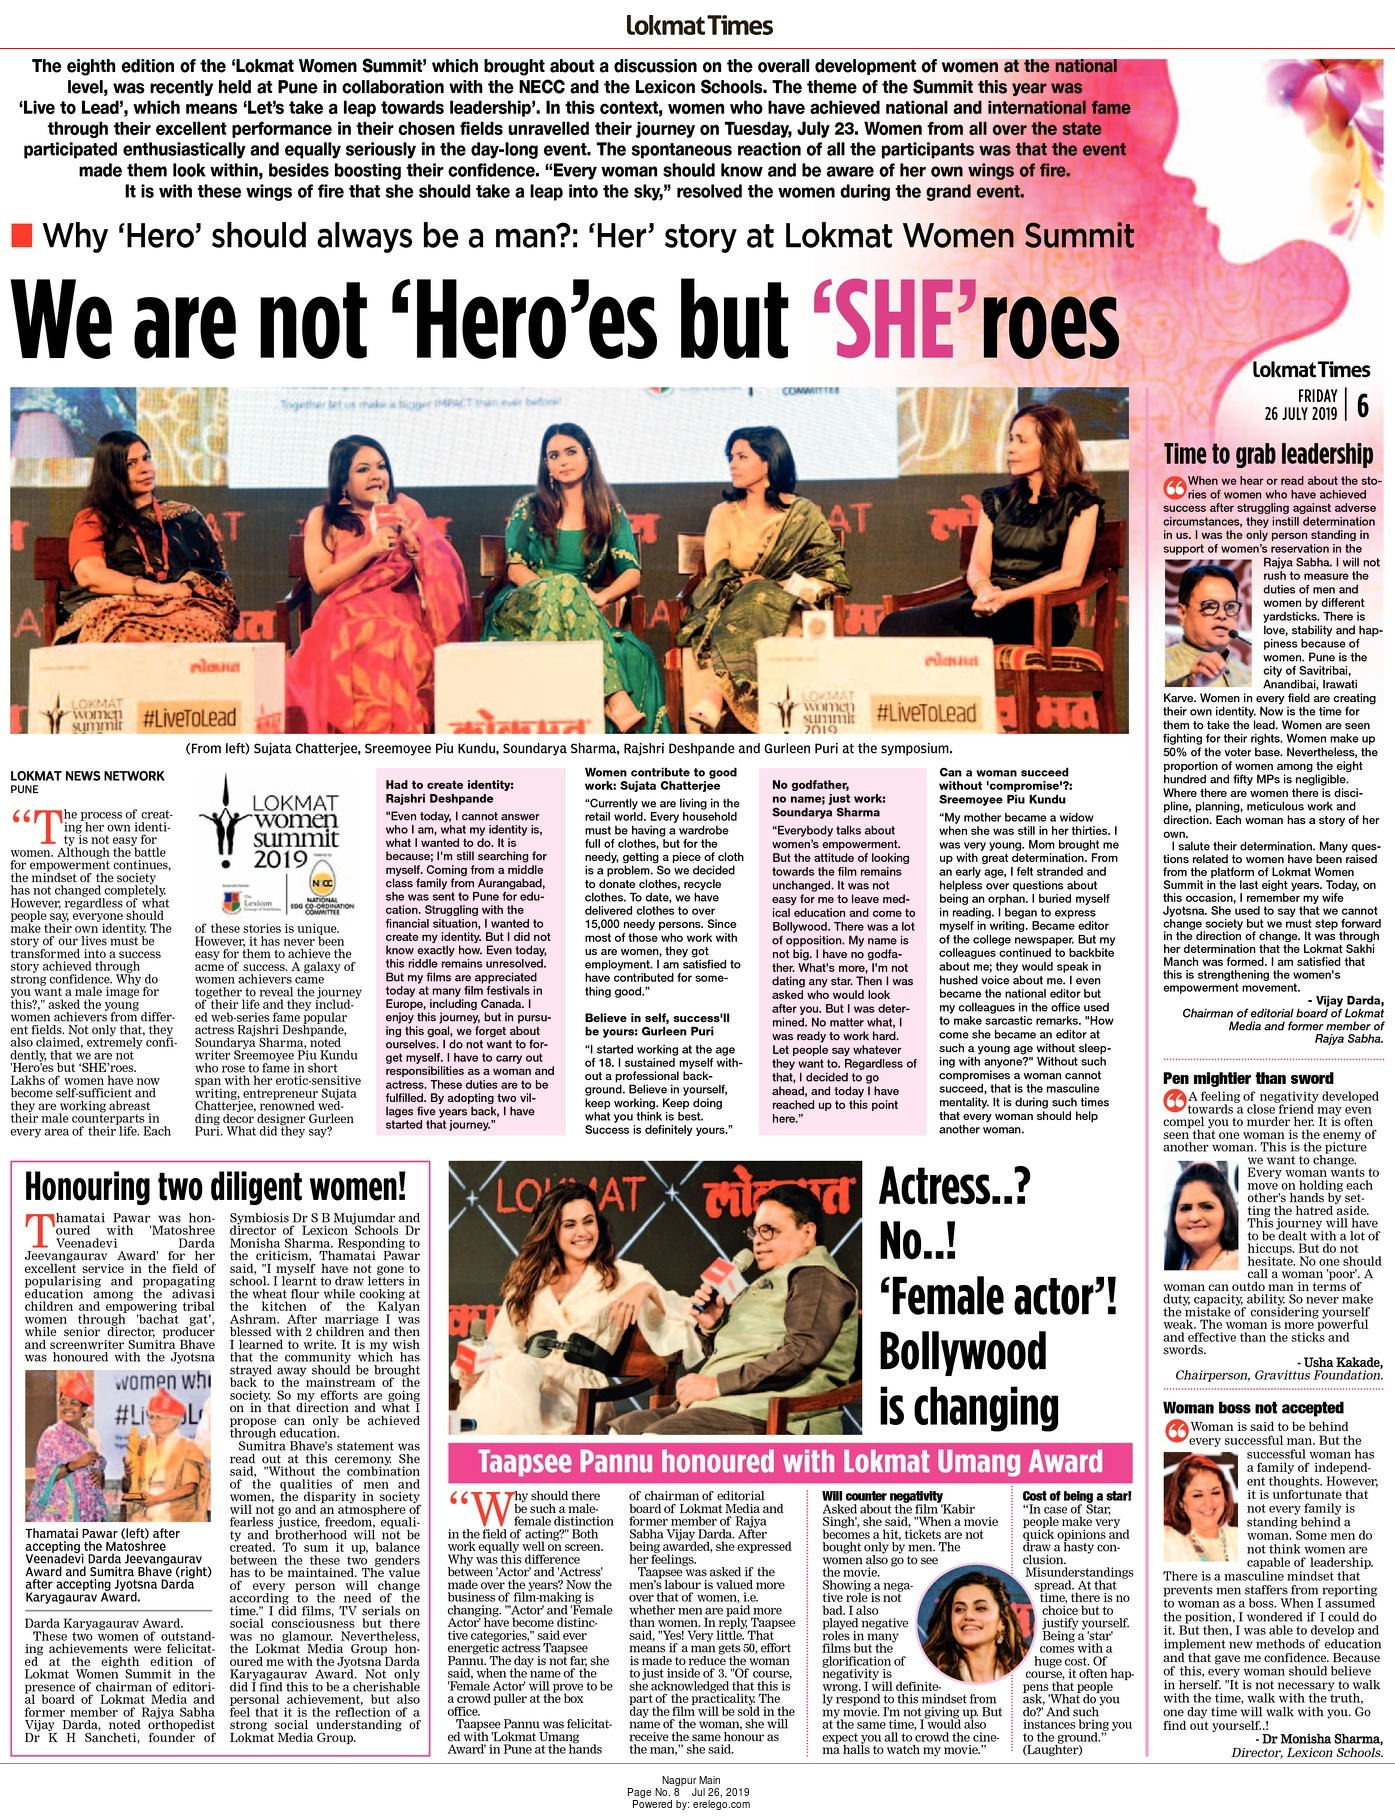 We are not 'Hero'es but 'SHE'roes